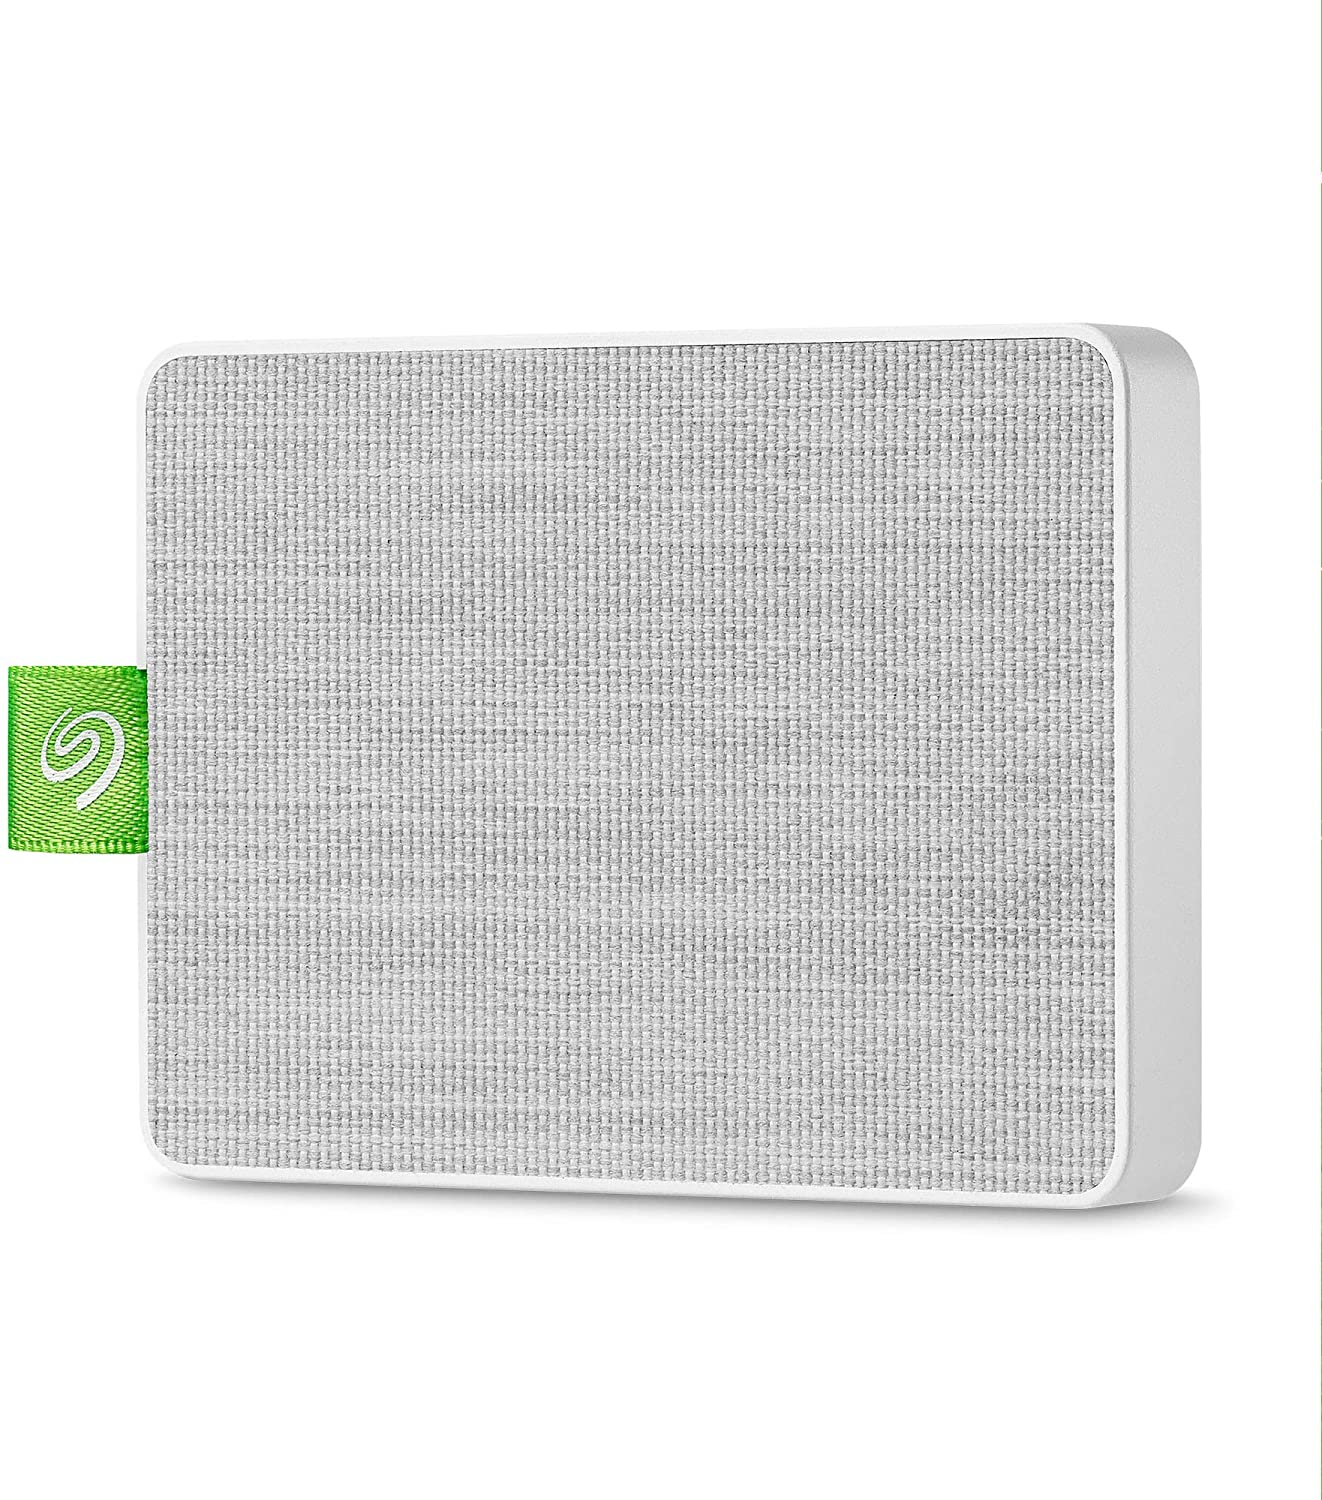 """PC Components/ HDD/ External/ 2.5""""/ Seagate 1TB Ultra Touch USB 3.0 External SSD White STJW1000400"""